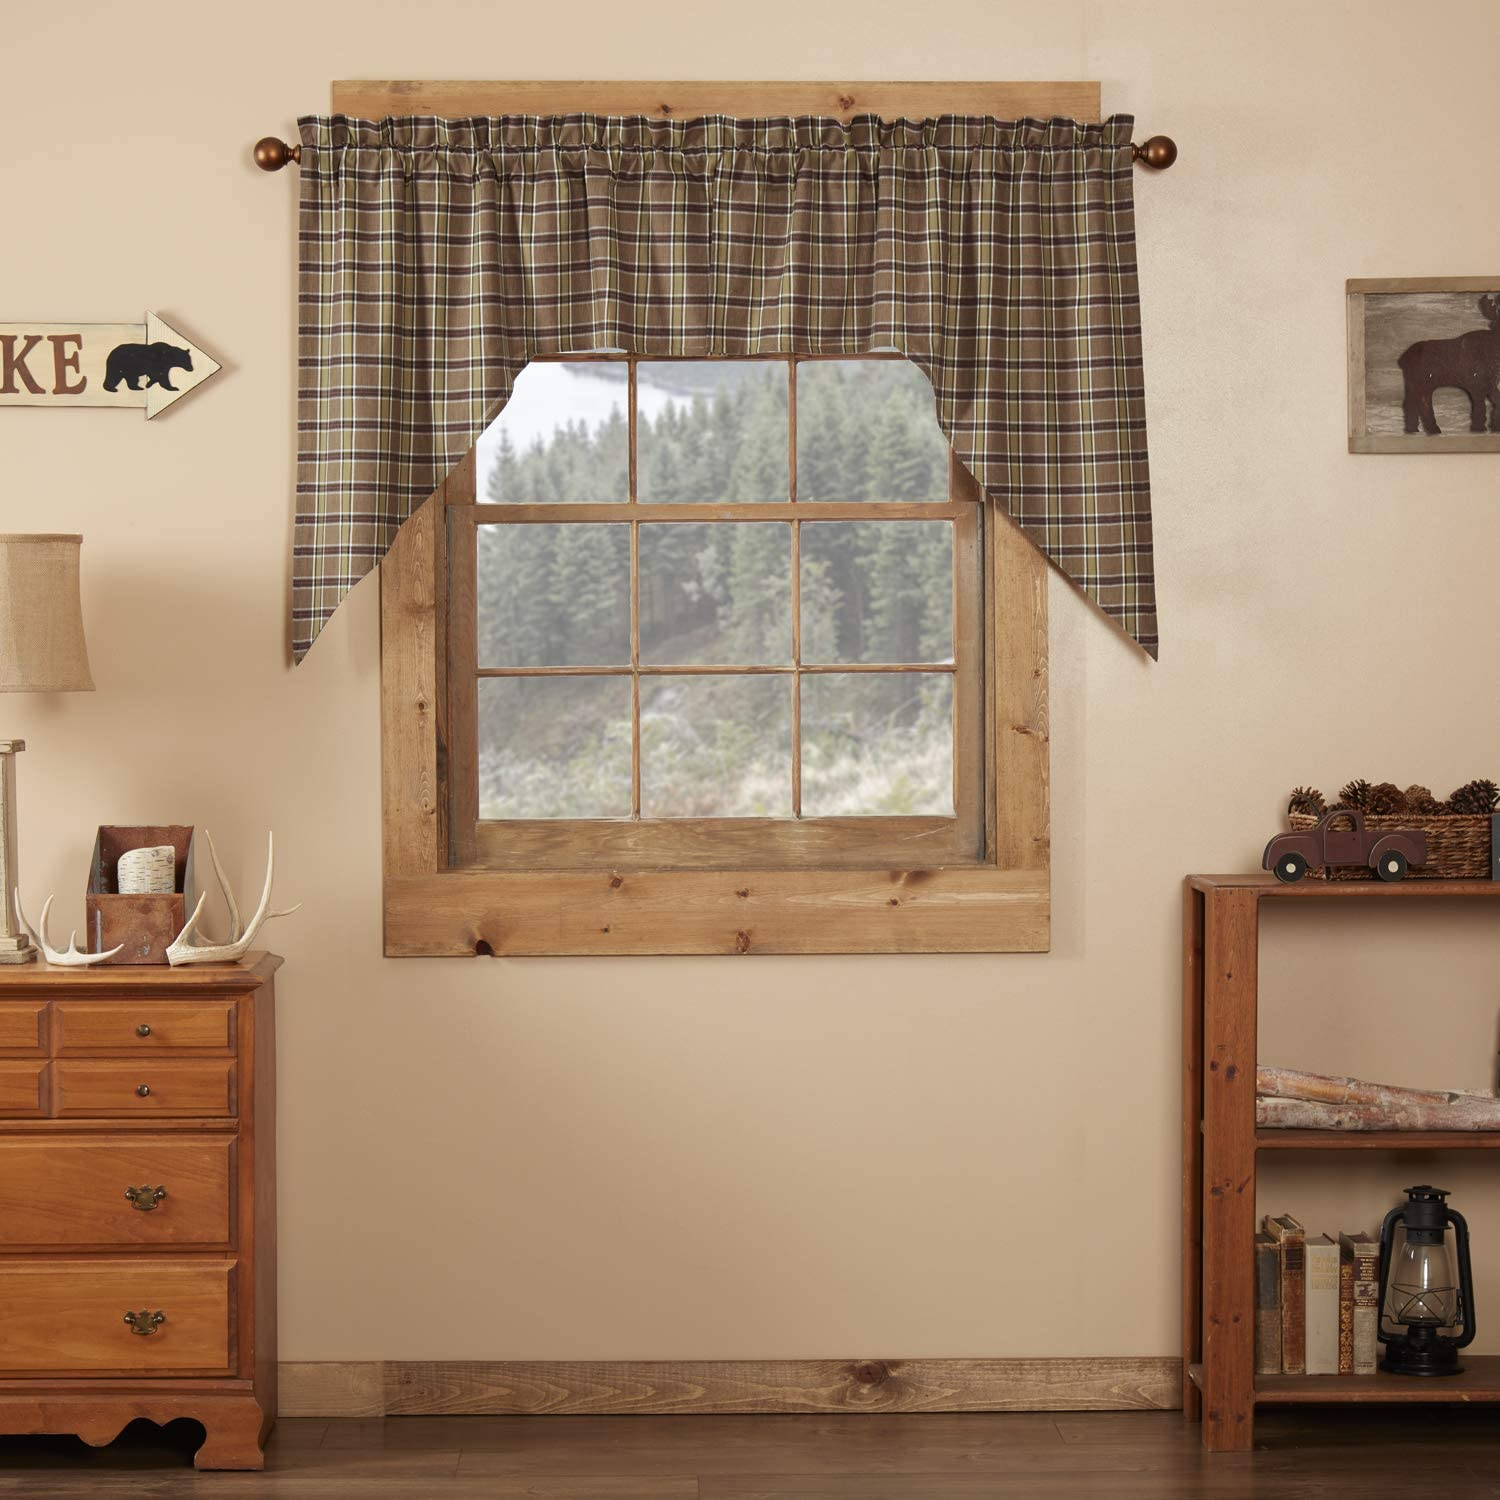 VHCBS Rustic & Lodge Kitchen Window Curtains - Wyatt Tan Swag Pair, Set 36x36x16